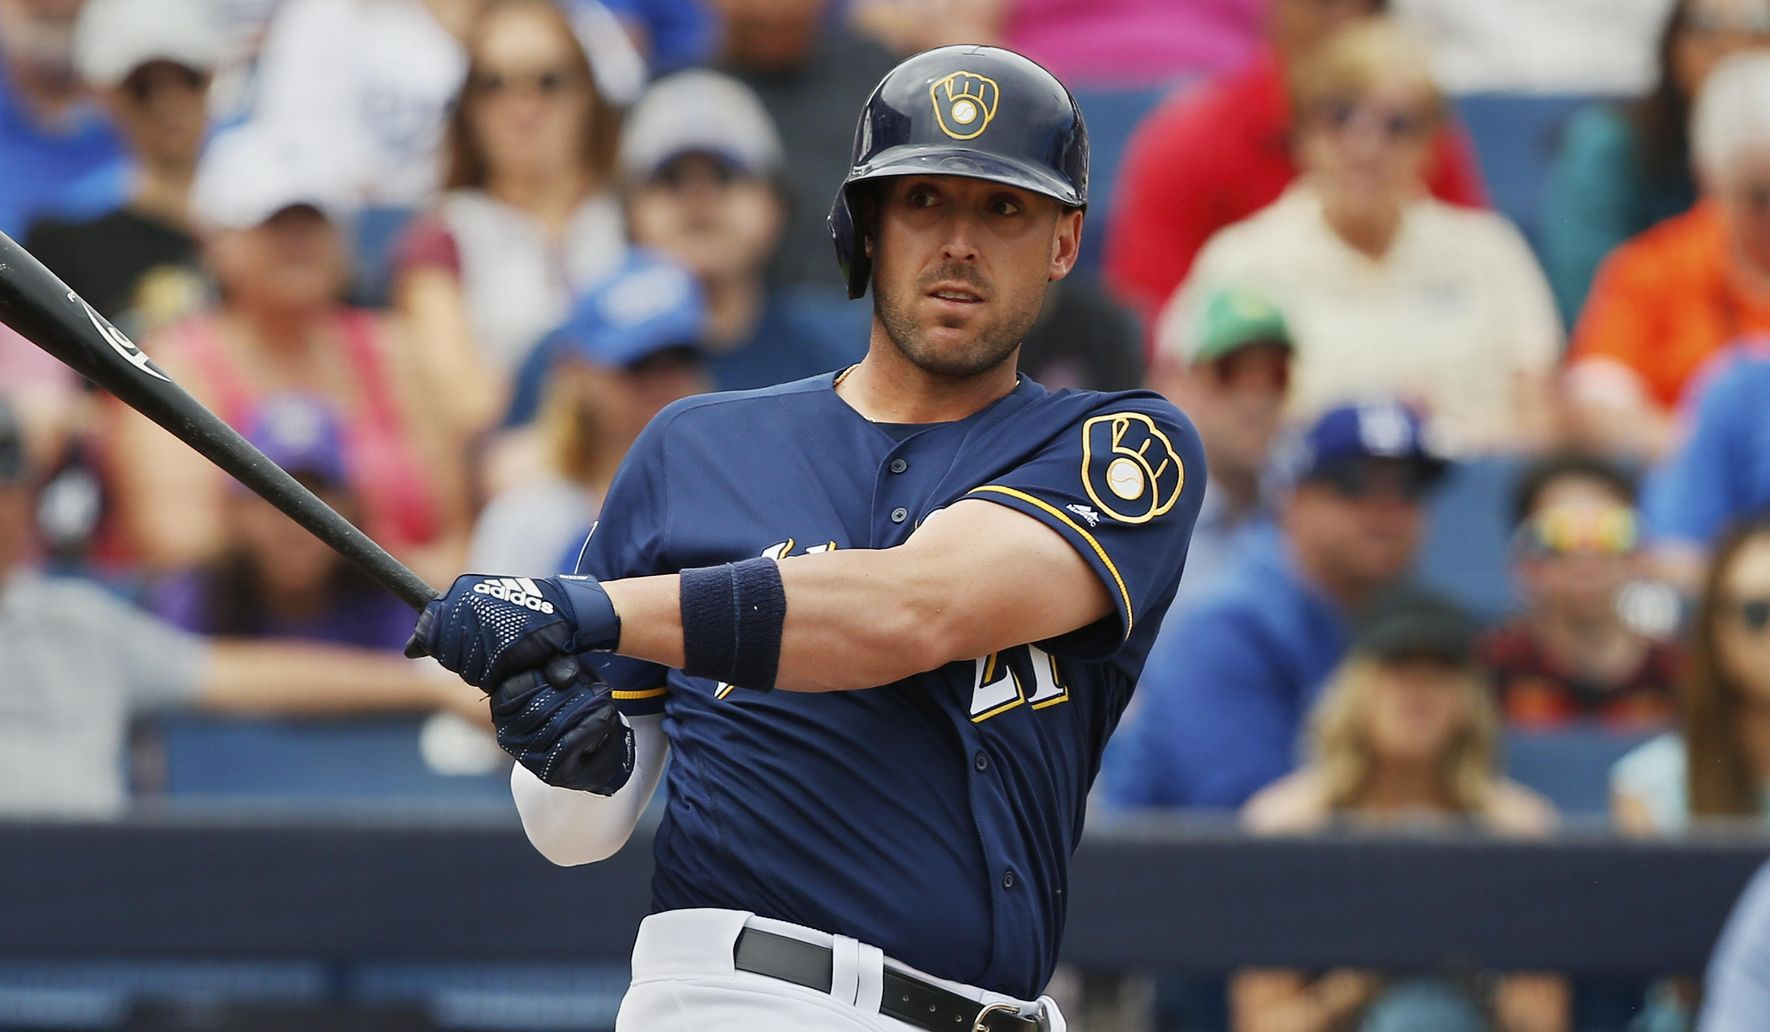 Brewers_shaw_baseball_25025_c85-0-4715-2700_s1770x1032